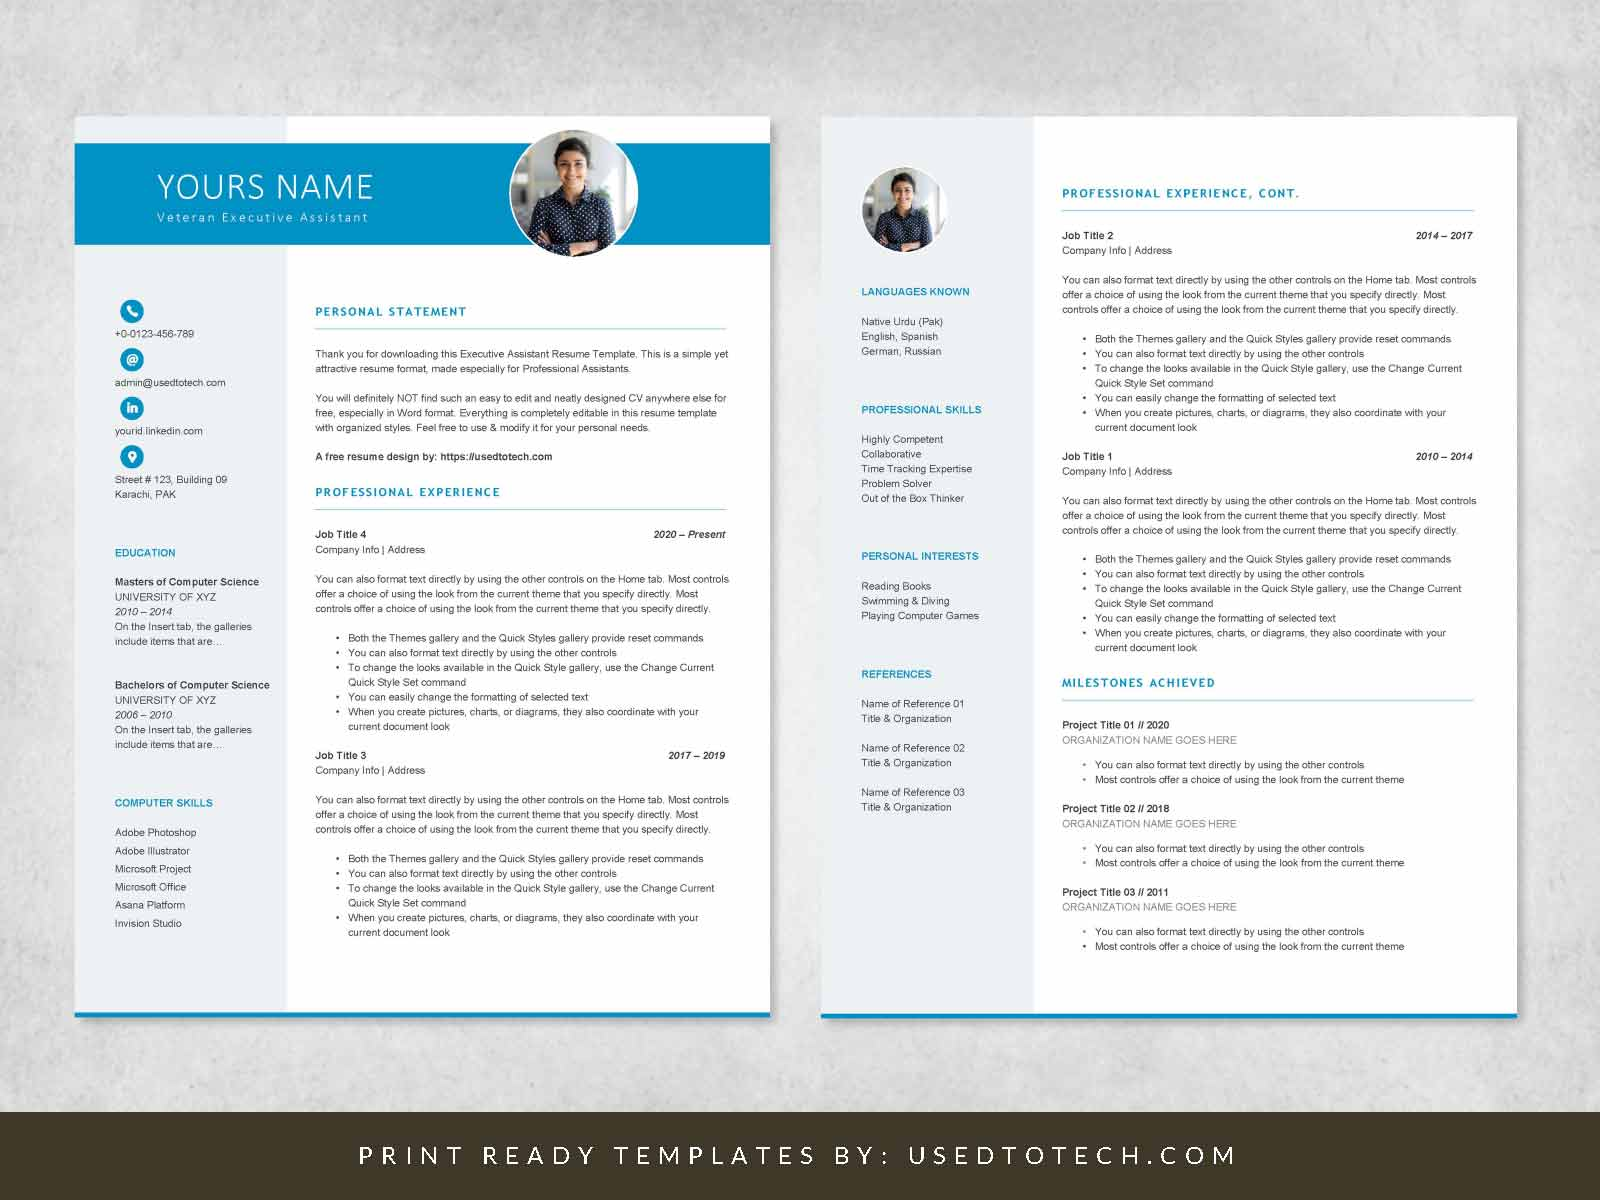 Word design for executive assistant resume